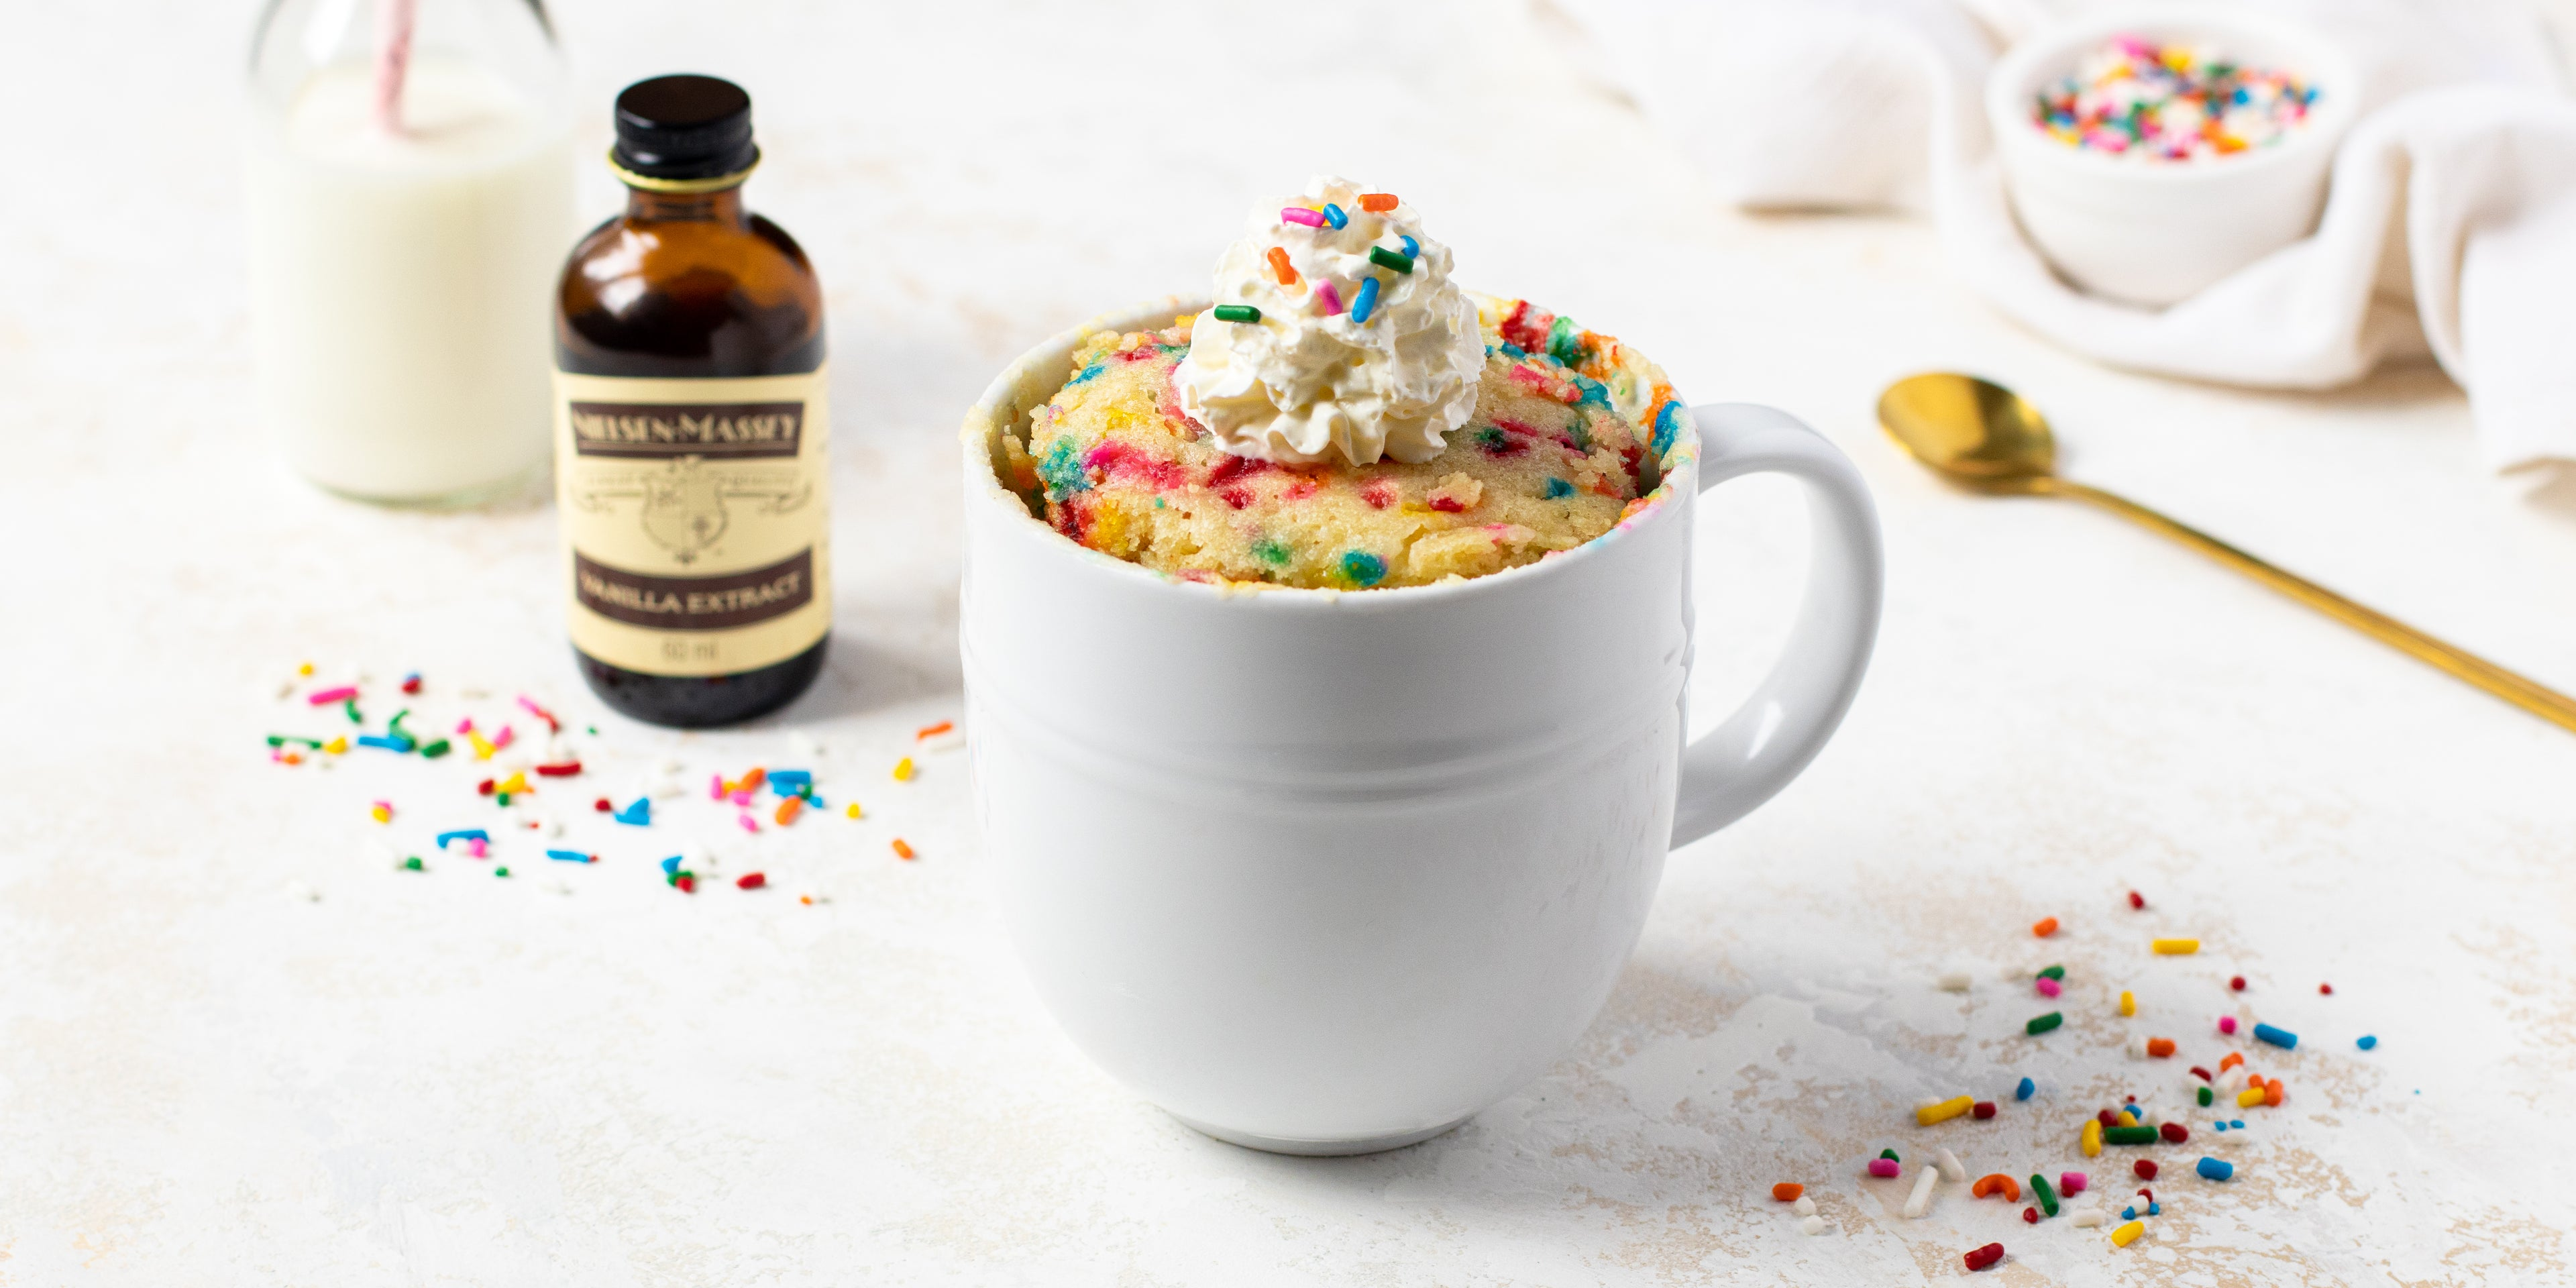 Birthday Cake Mug Cake with a dollop of whipped cream on top with sprinkles, and a bottle of Nielsen-Massey Vanilla extract in the background